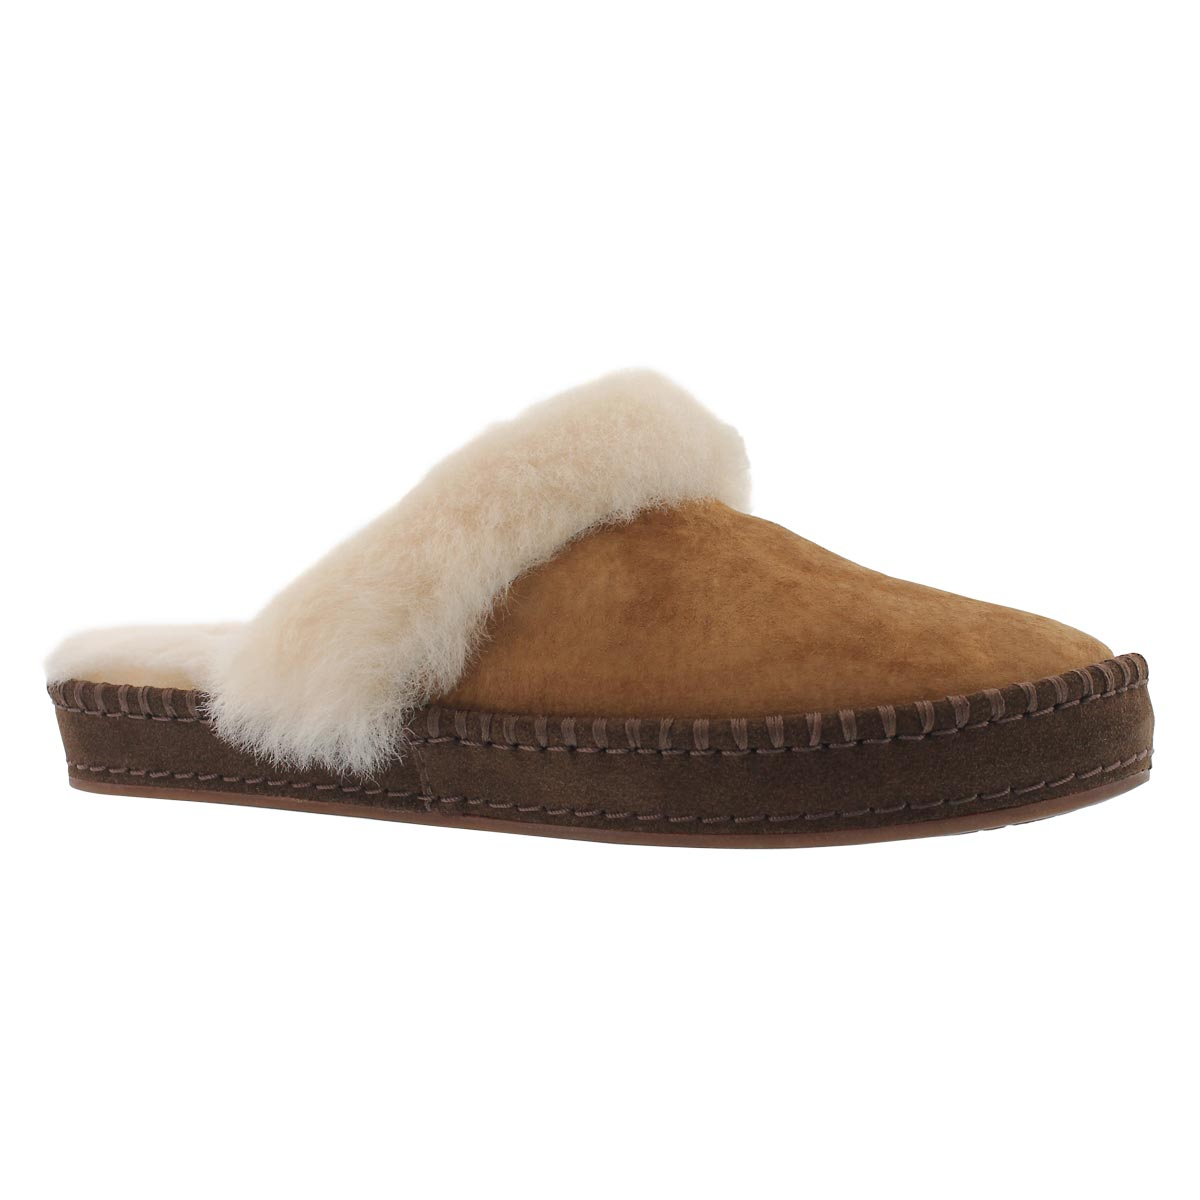 Women's AIRA chestnut slippers